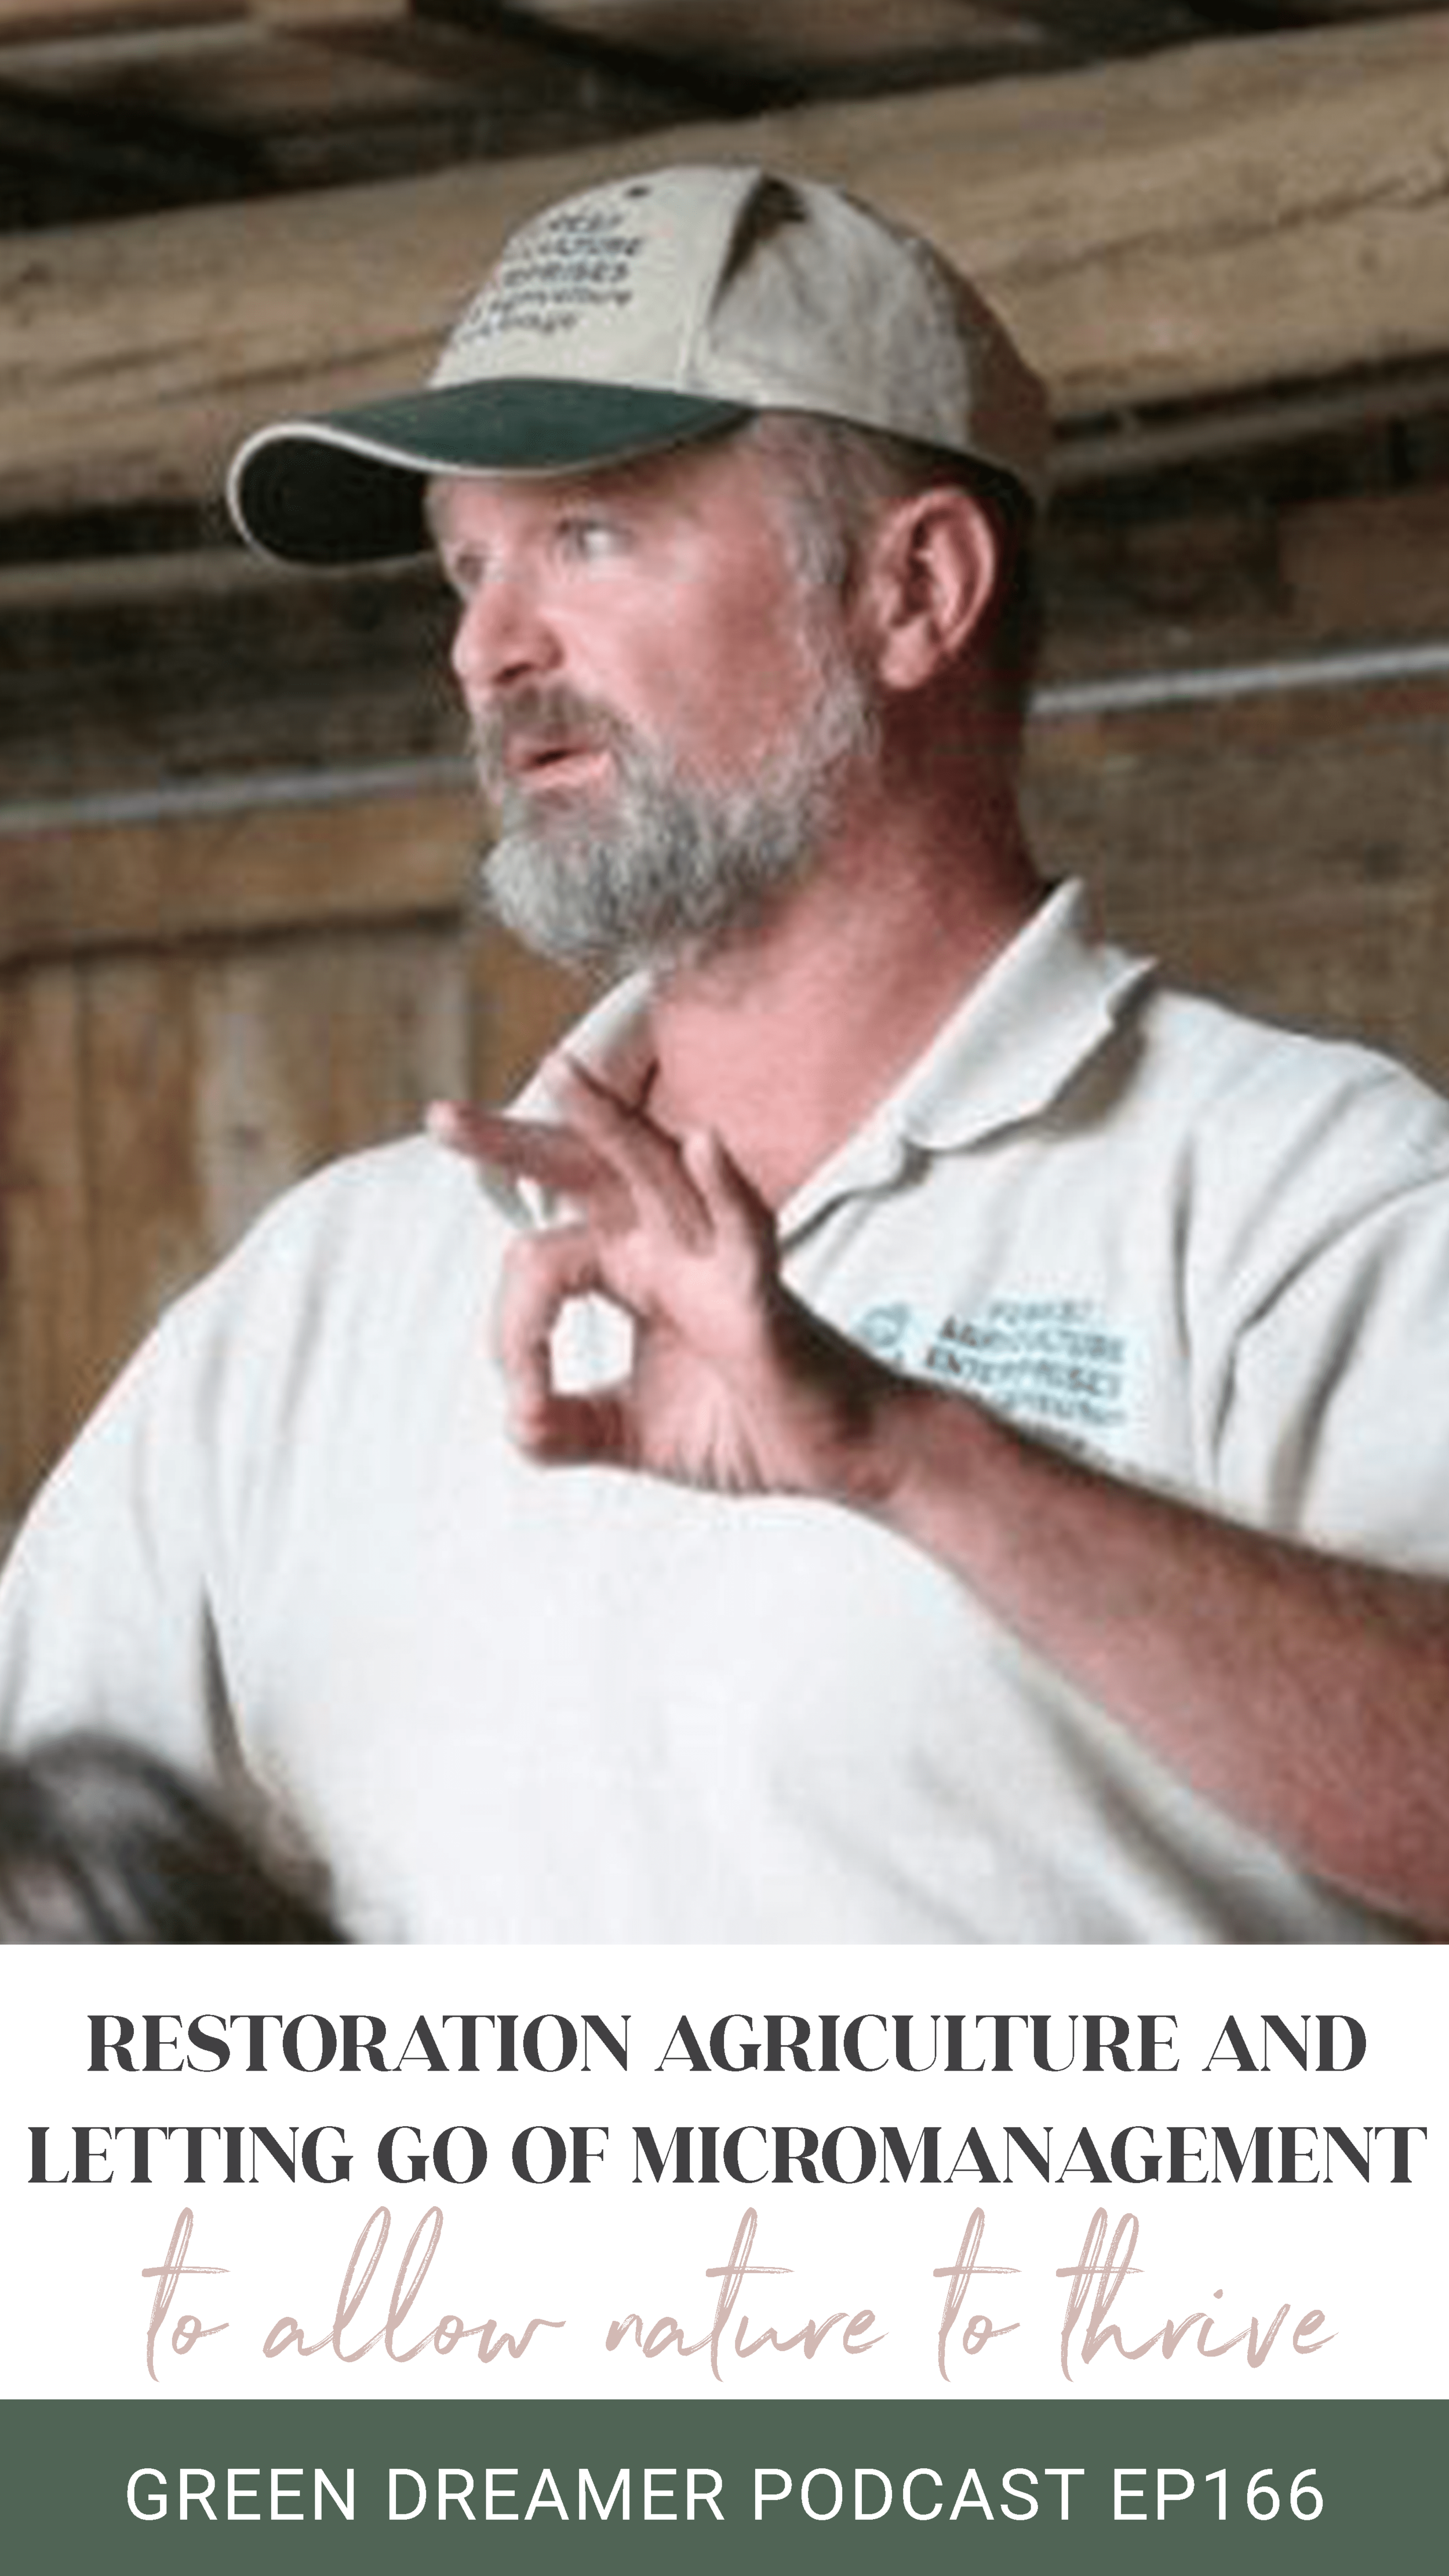 Restoration agriculture and letting go of micromanagement to allow nature to thrive - Green Dreamer Podcast